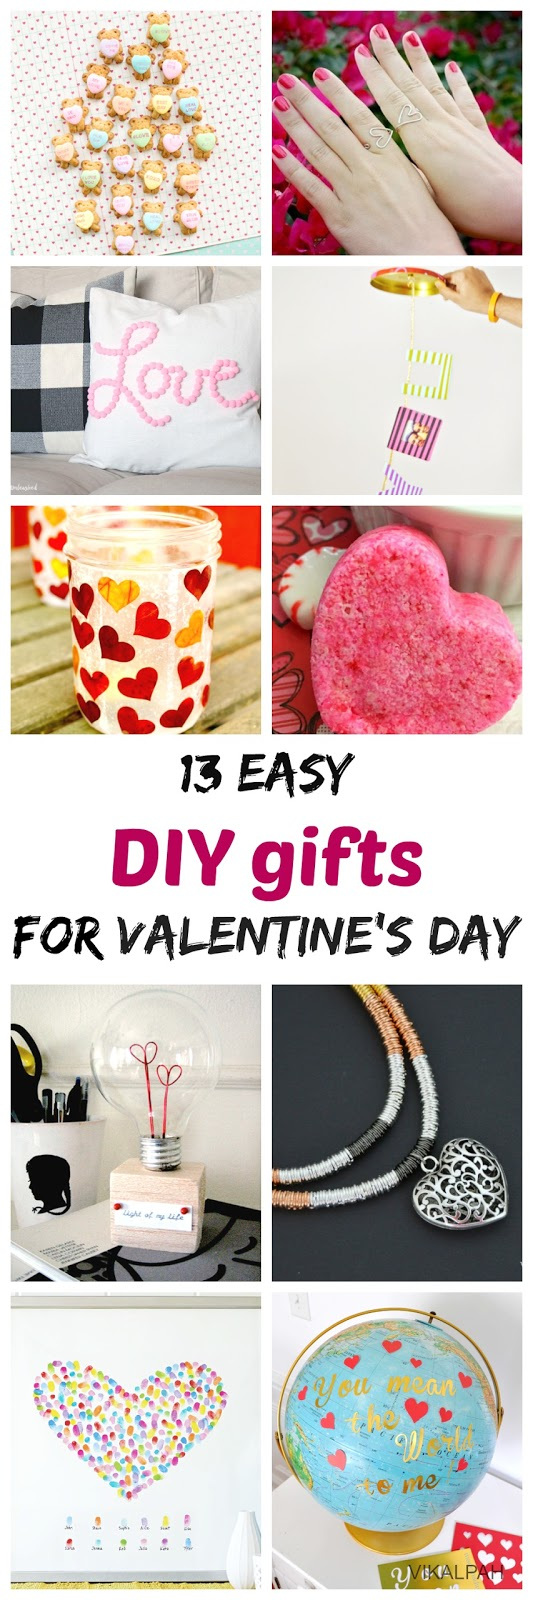 DIY gift ideas for valentines day